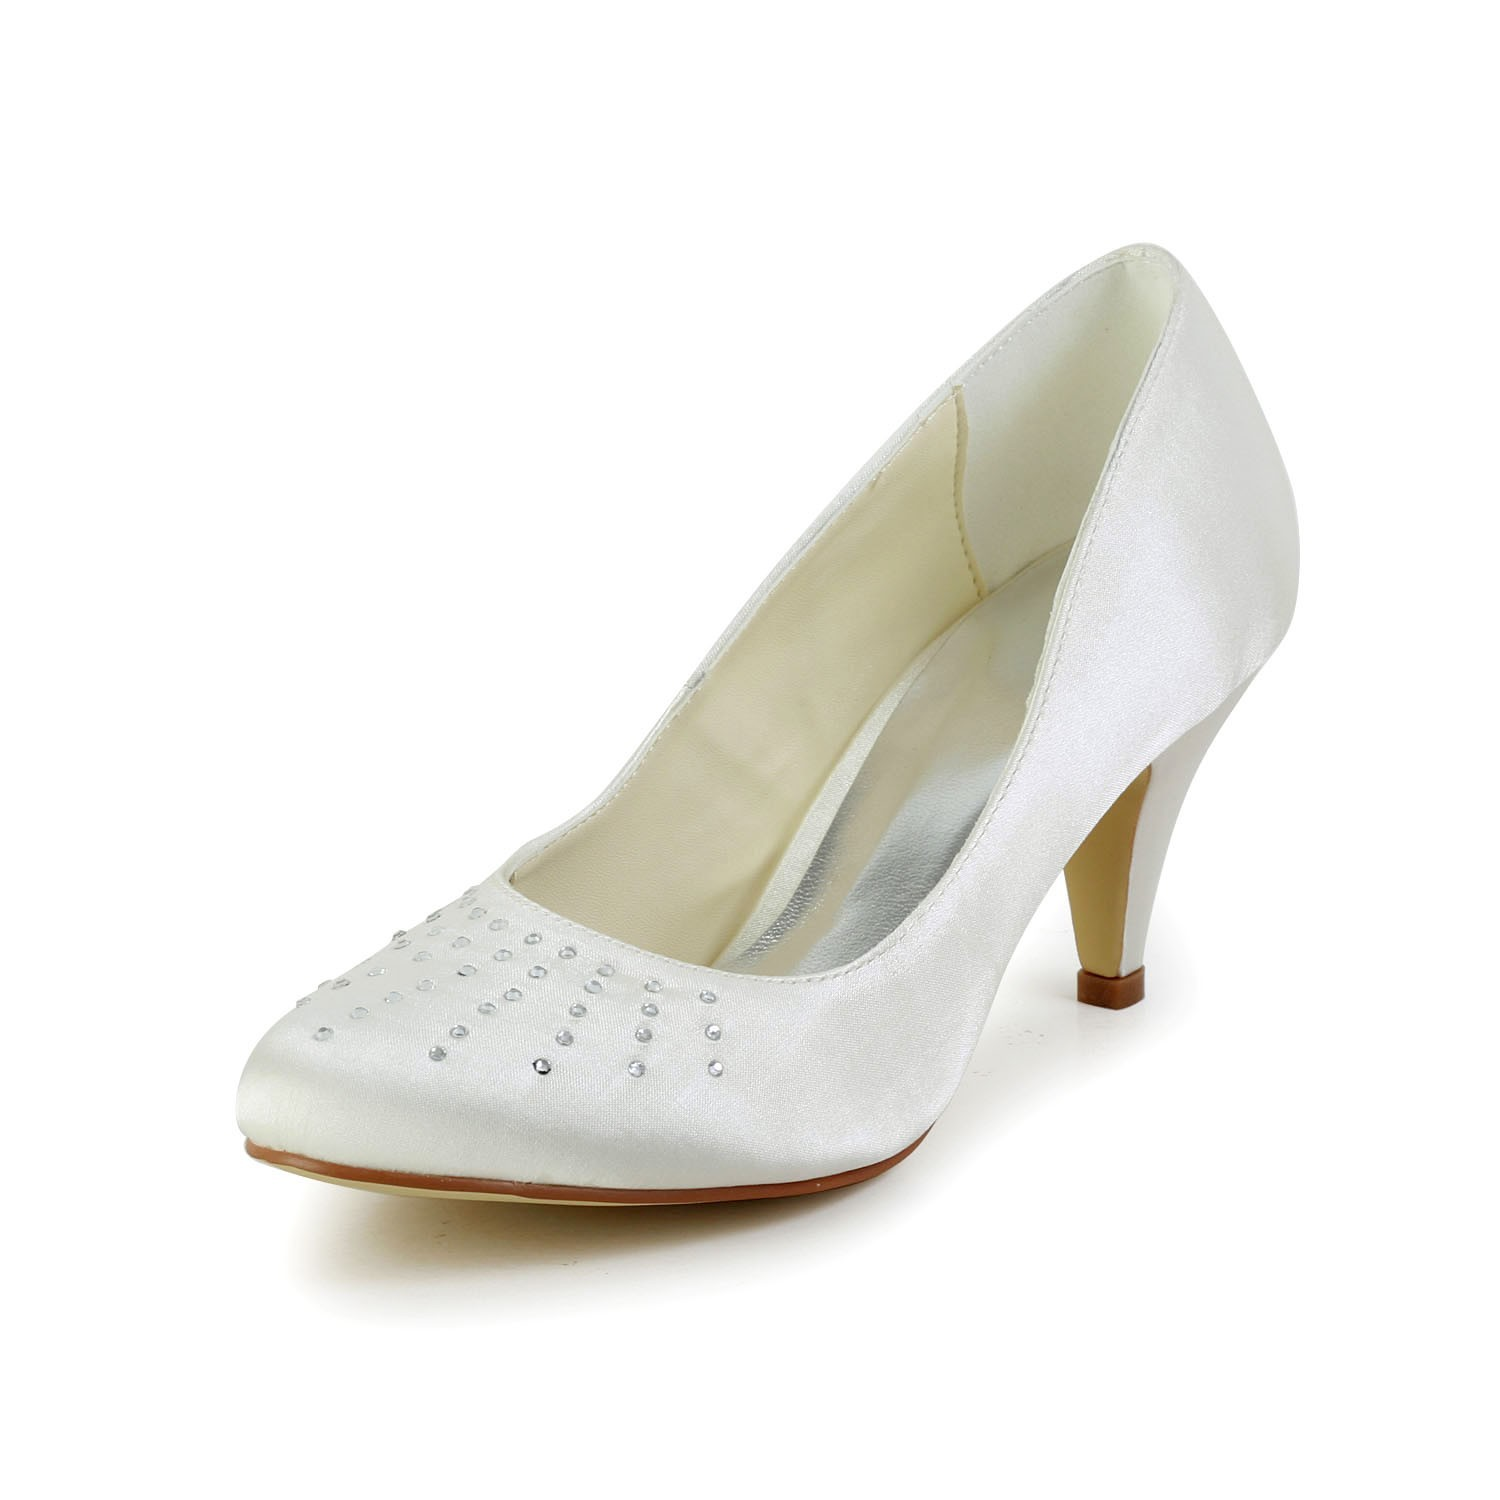 Women's Satin Closed Toe Cone Heel Ivory Wedding Shoes With Rhinestone